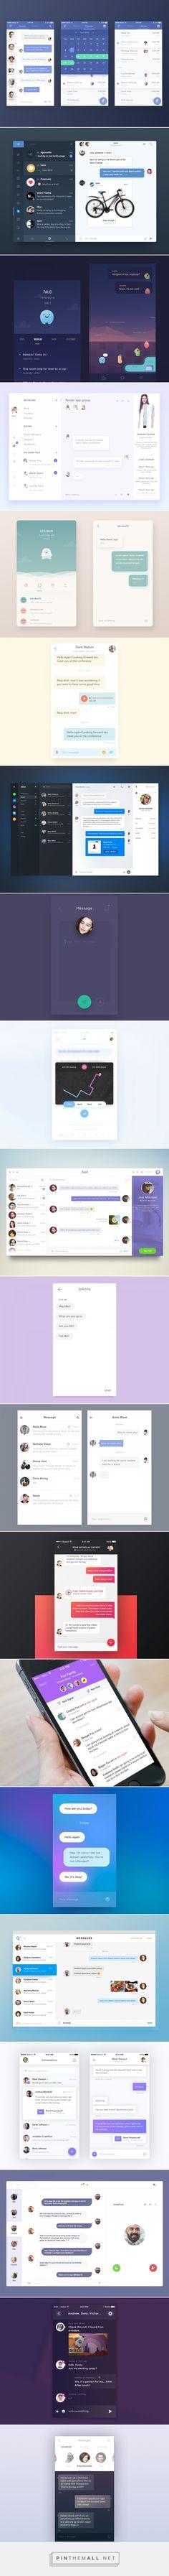 Chat/Messaging UI Inspiration — Muzli -Design Inspiration — Medium - created via https://pinthemall.net